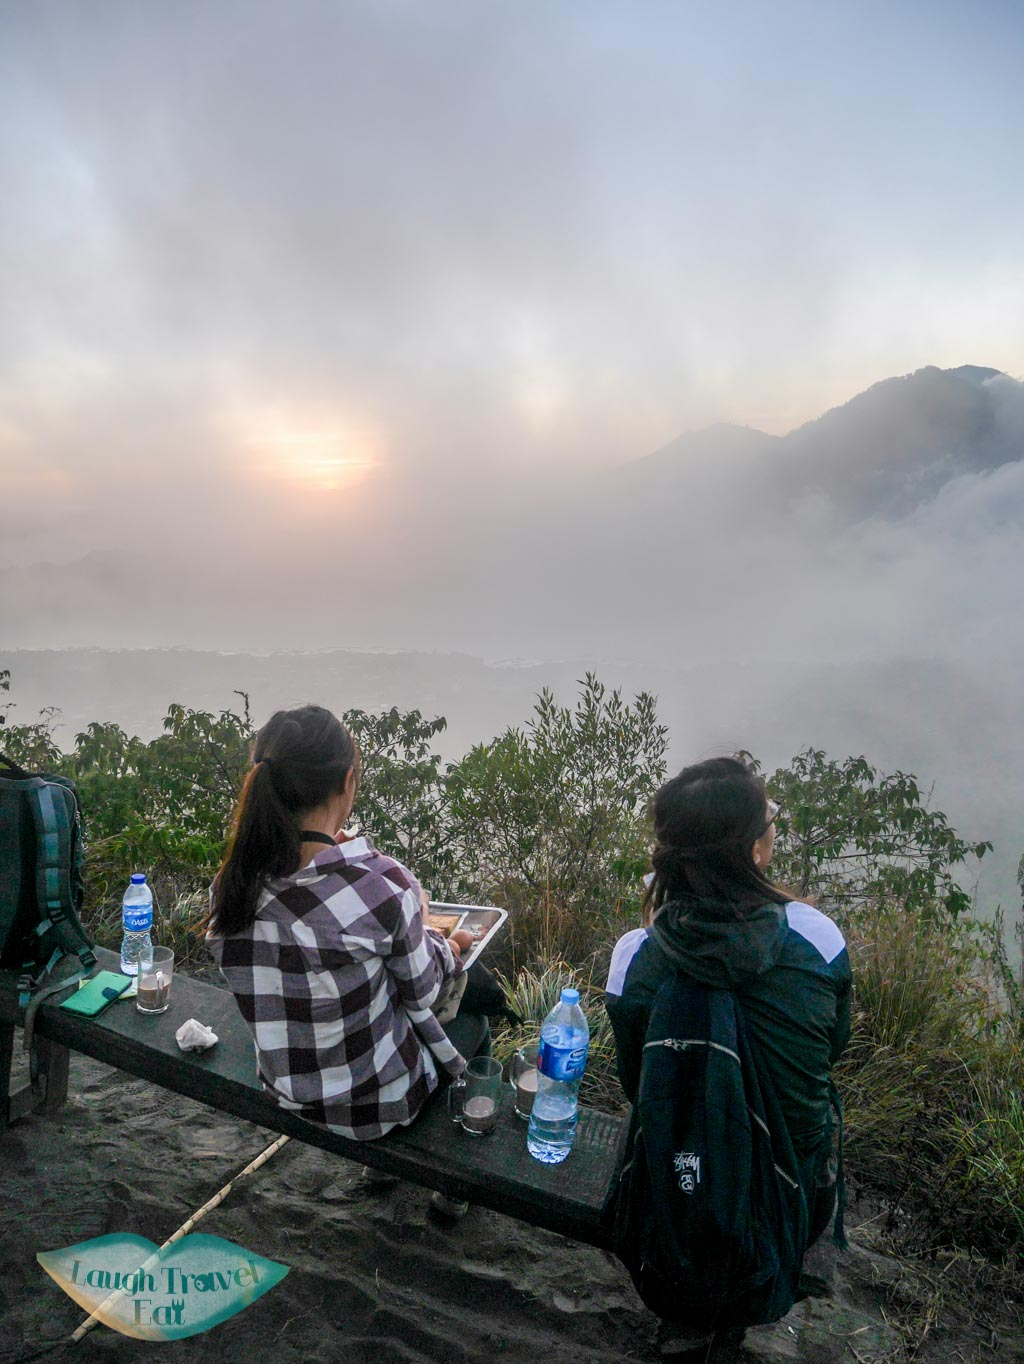 waiting for sunrise on top of Mount Batur bali indonesia - laugh travel eat